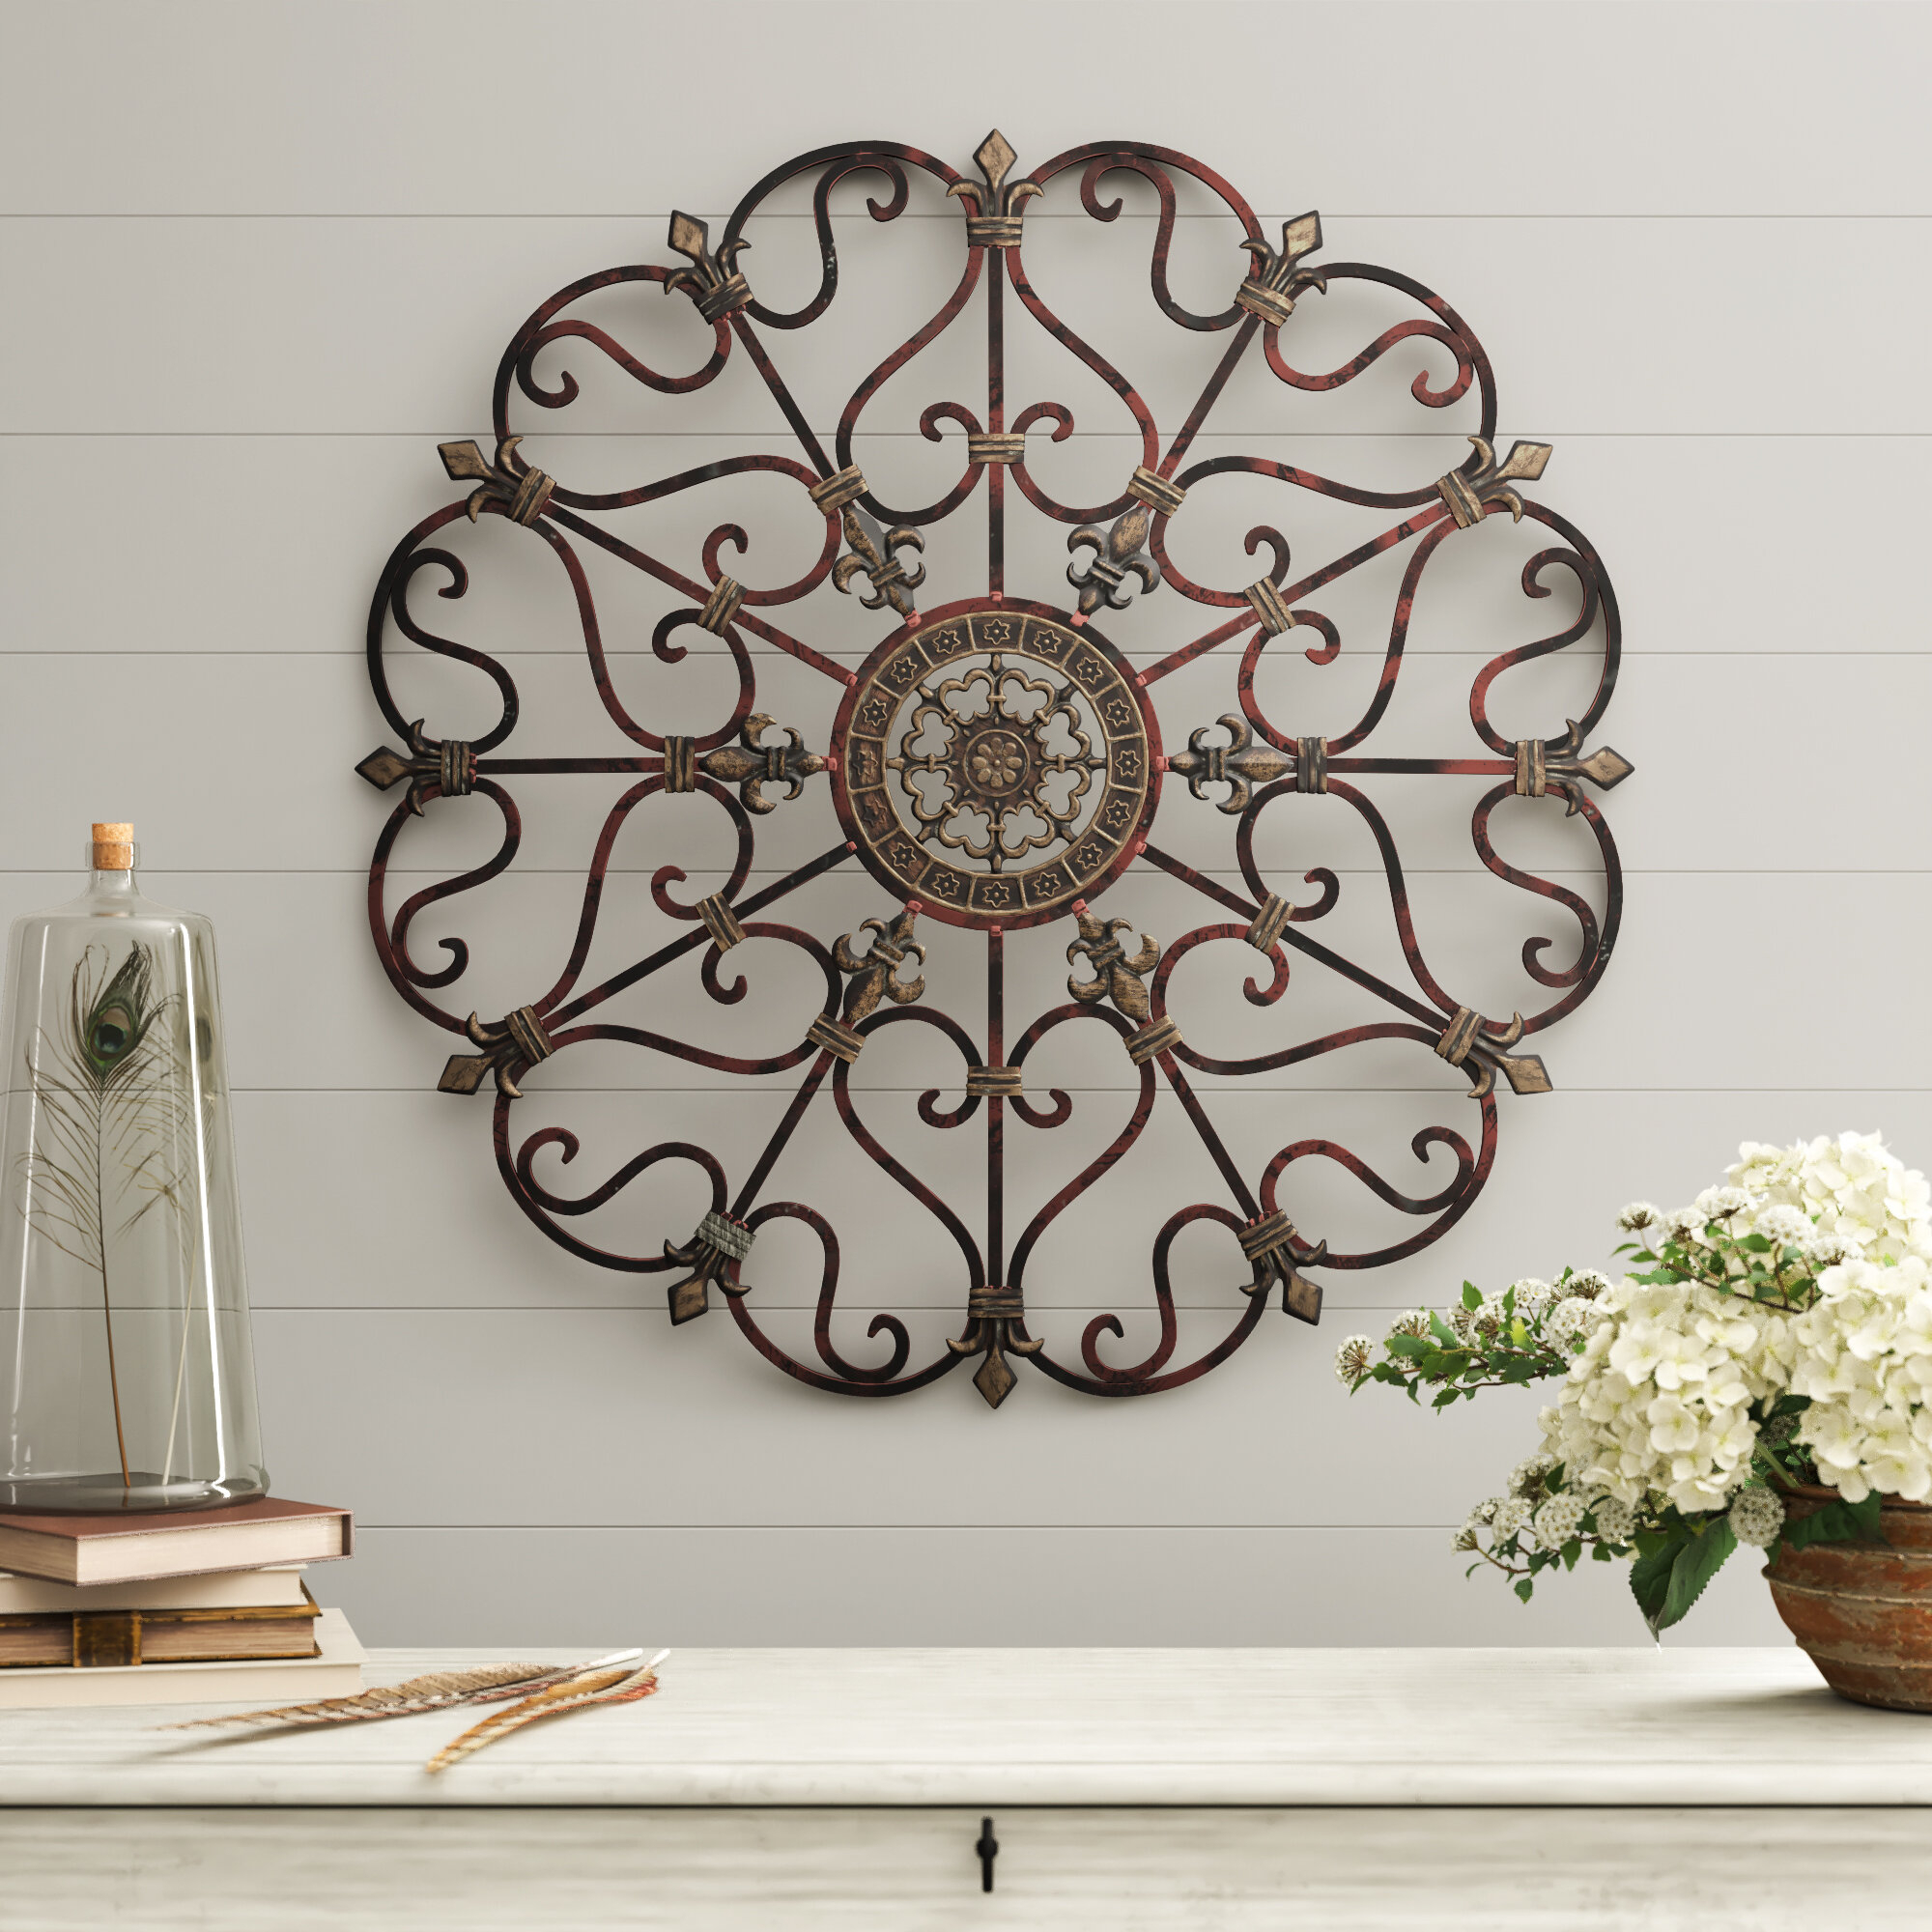 Farmhouse & Rustic Wall Decor   Birch Lane In Olive/gray Metal Wall Decor (View 16 of 30)